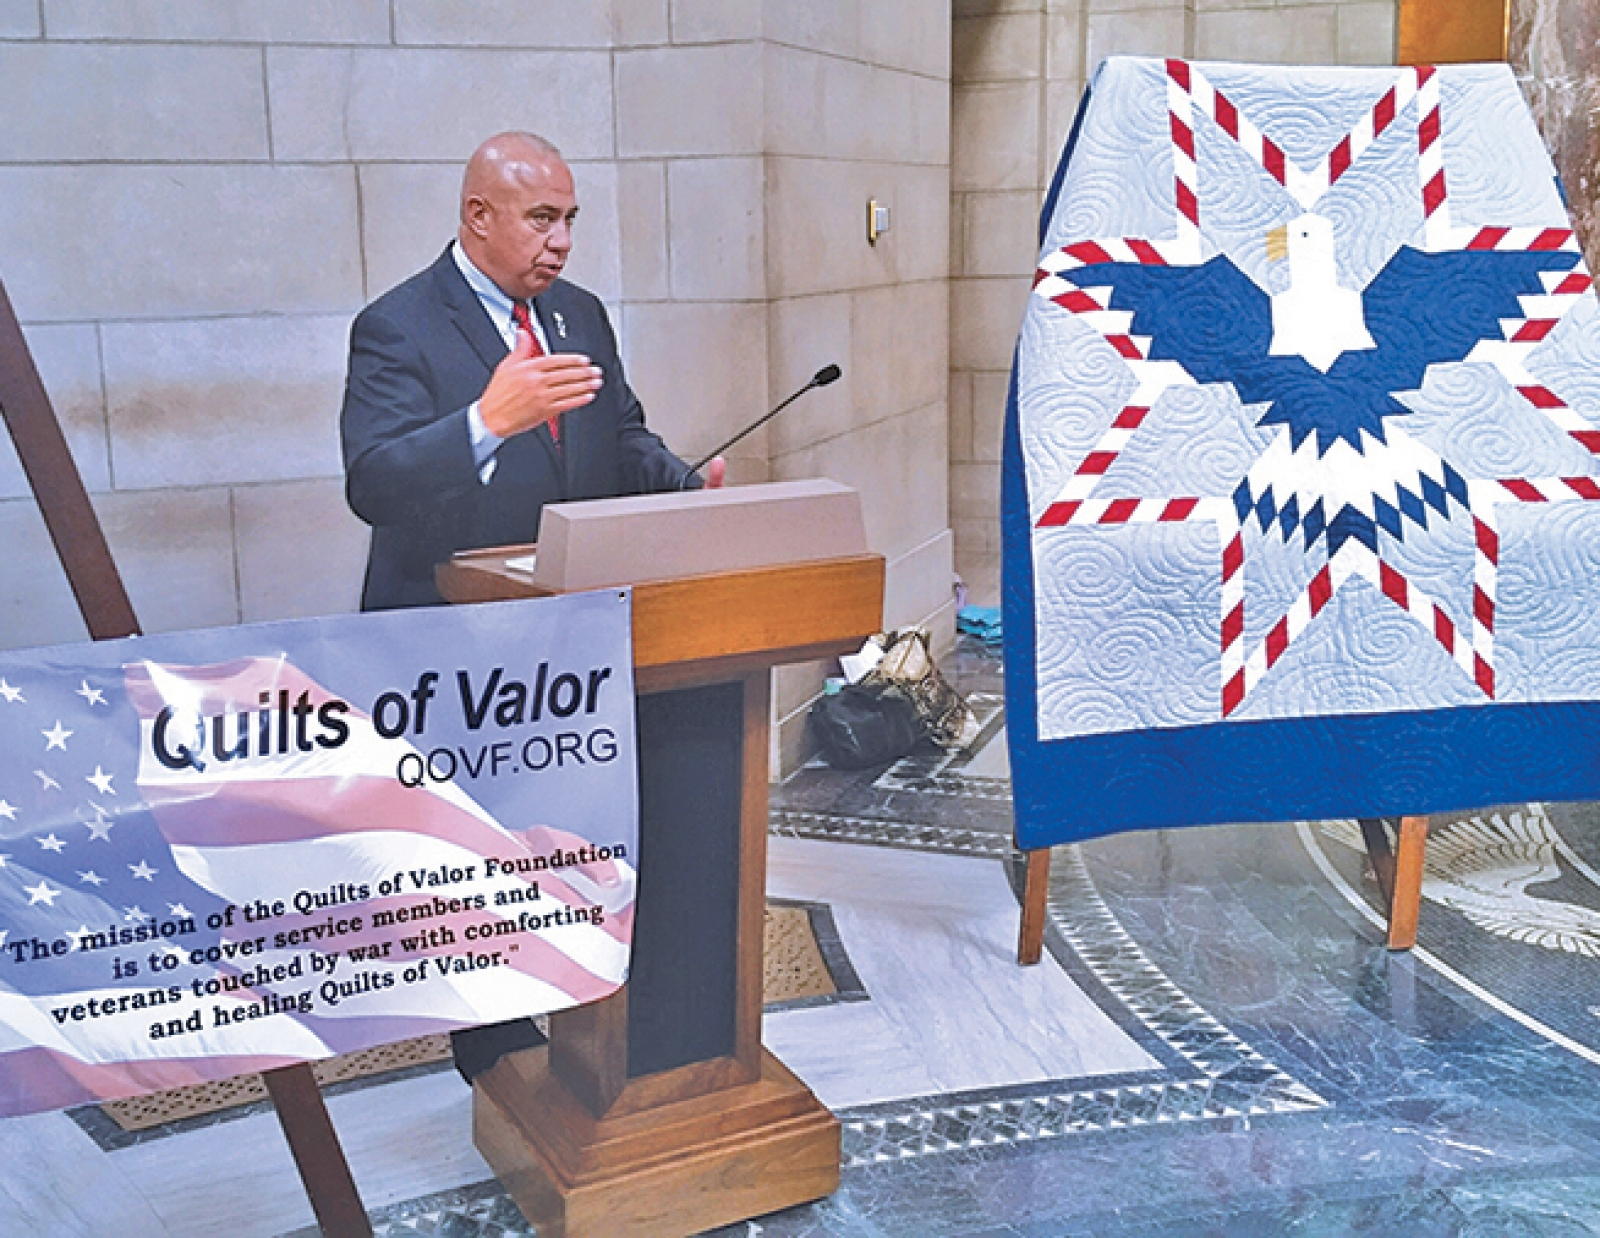 Senator Brewer awarded Quilts of Valor